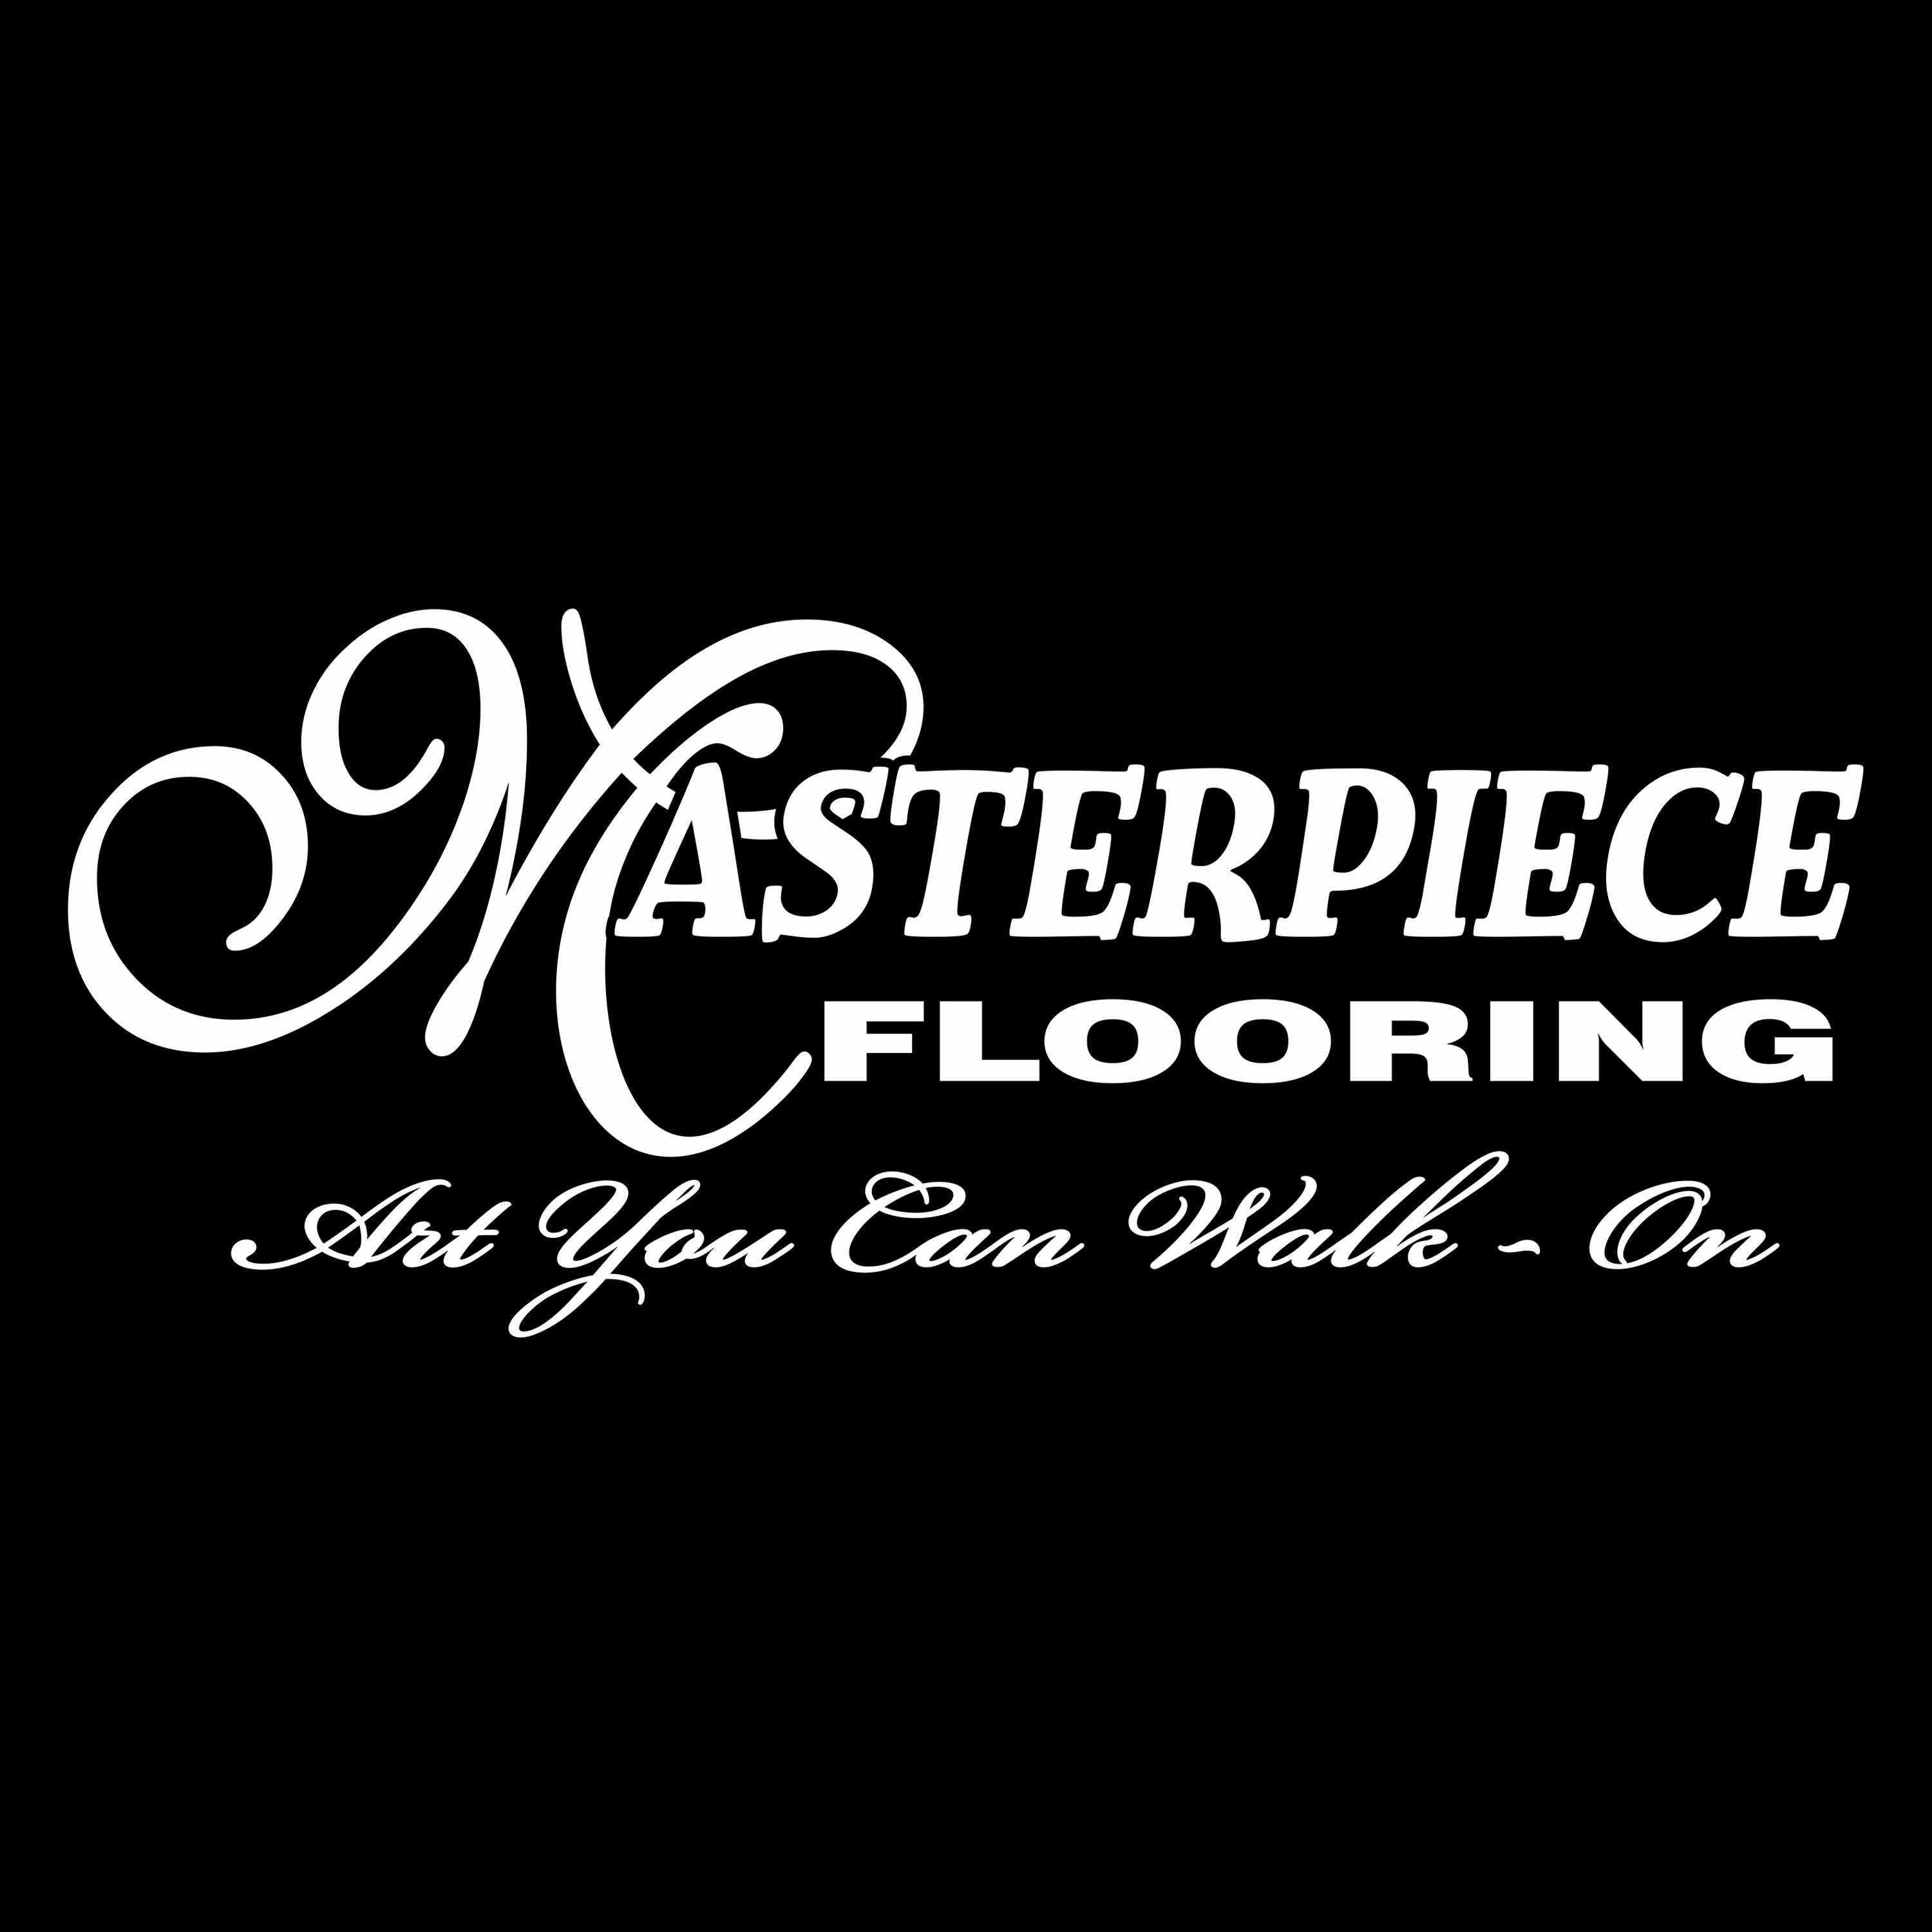 Masterpiece Flooring Chattanooga image 9